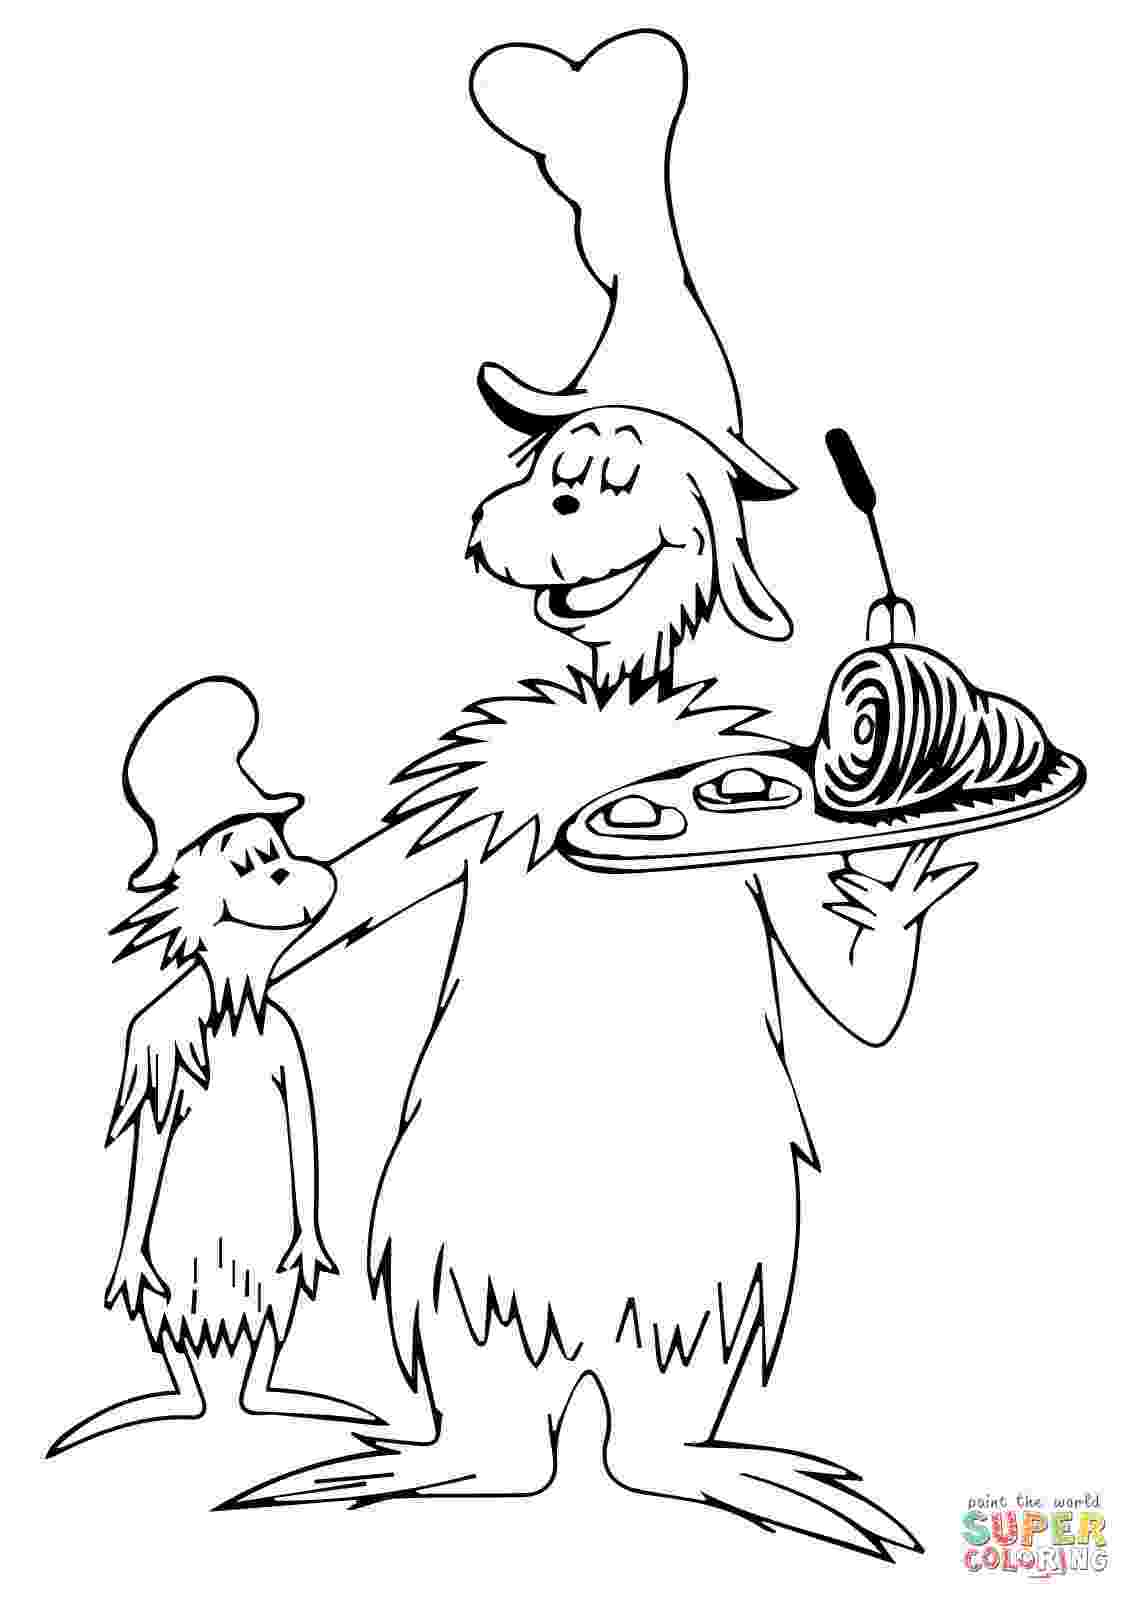 green eggs and ham coloring sheet download or print this amazing coloring page green eggs eggs ham and coloring green sheet